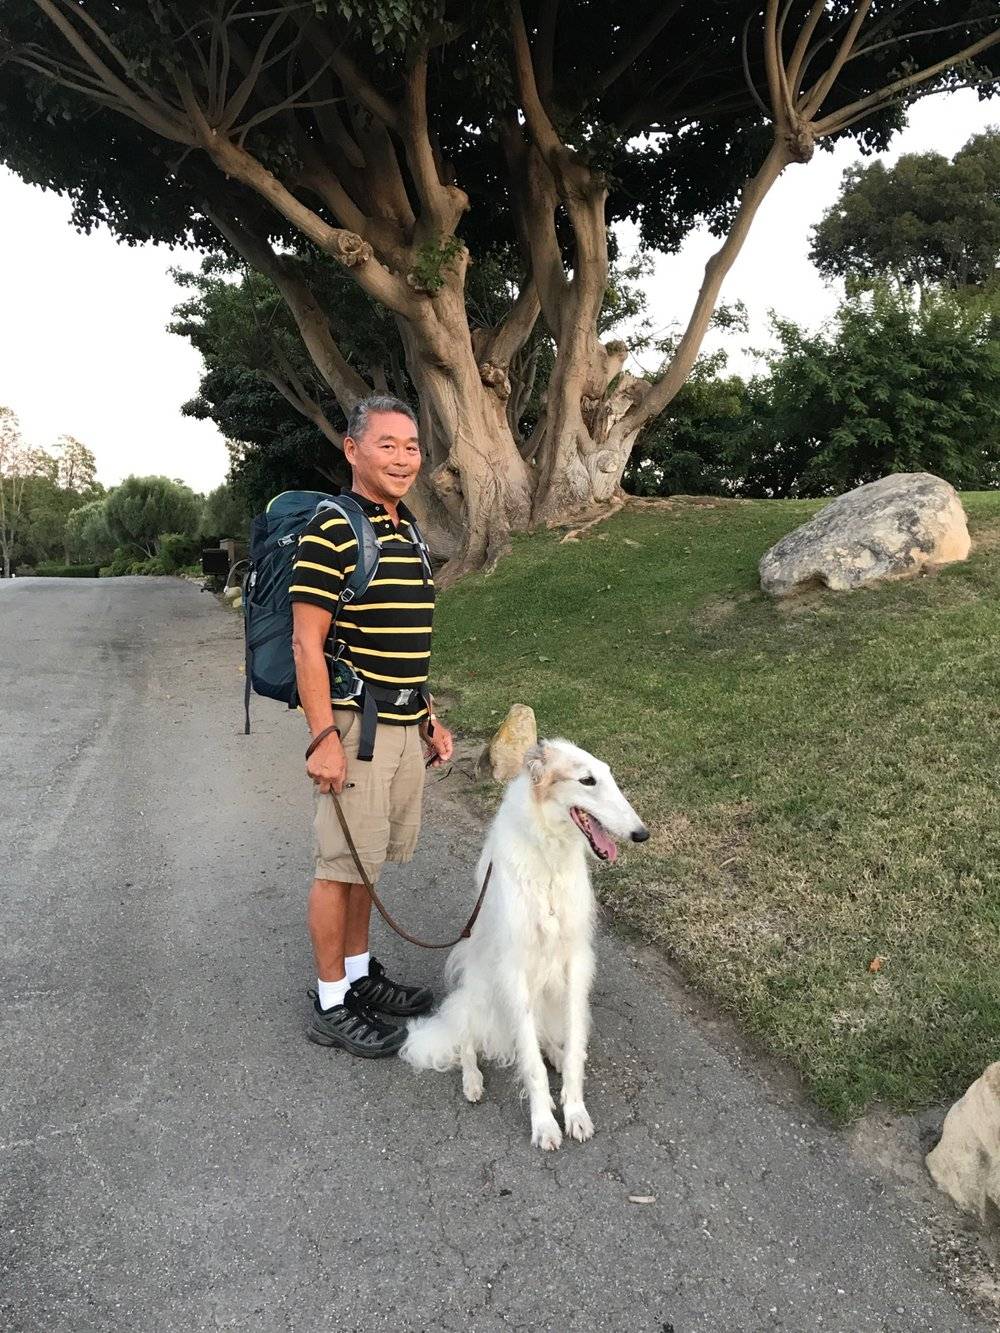 Here's Mike training with a 15 pound backpack while on a walk with Keesa.